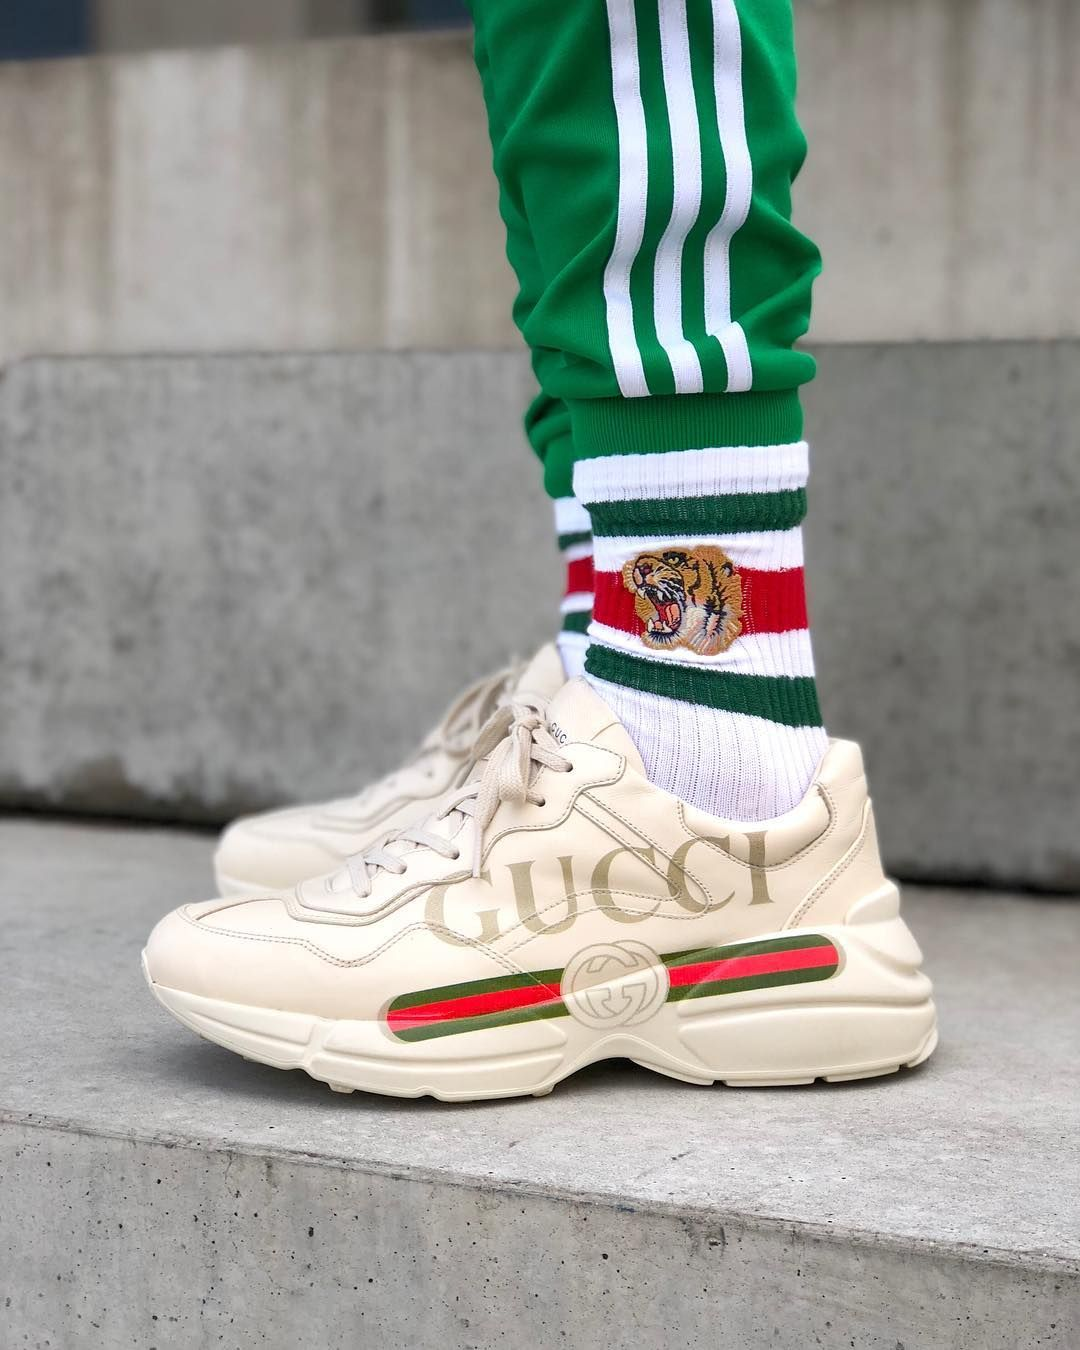 trends shoes for men, winter 2019, gucci sneakers, big shoes